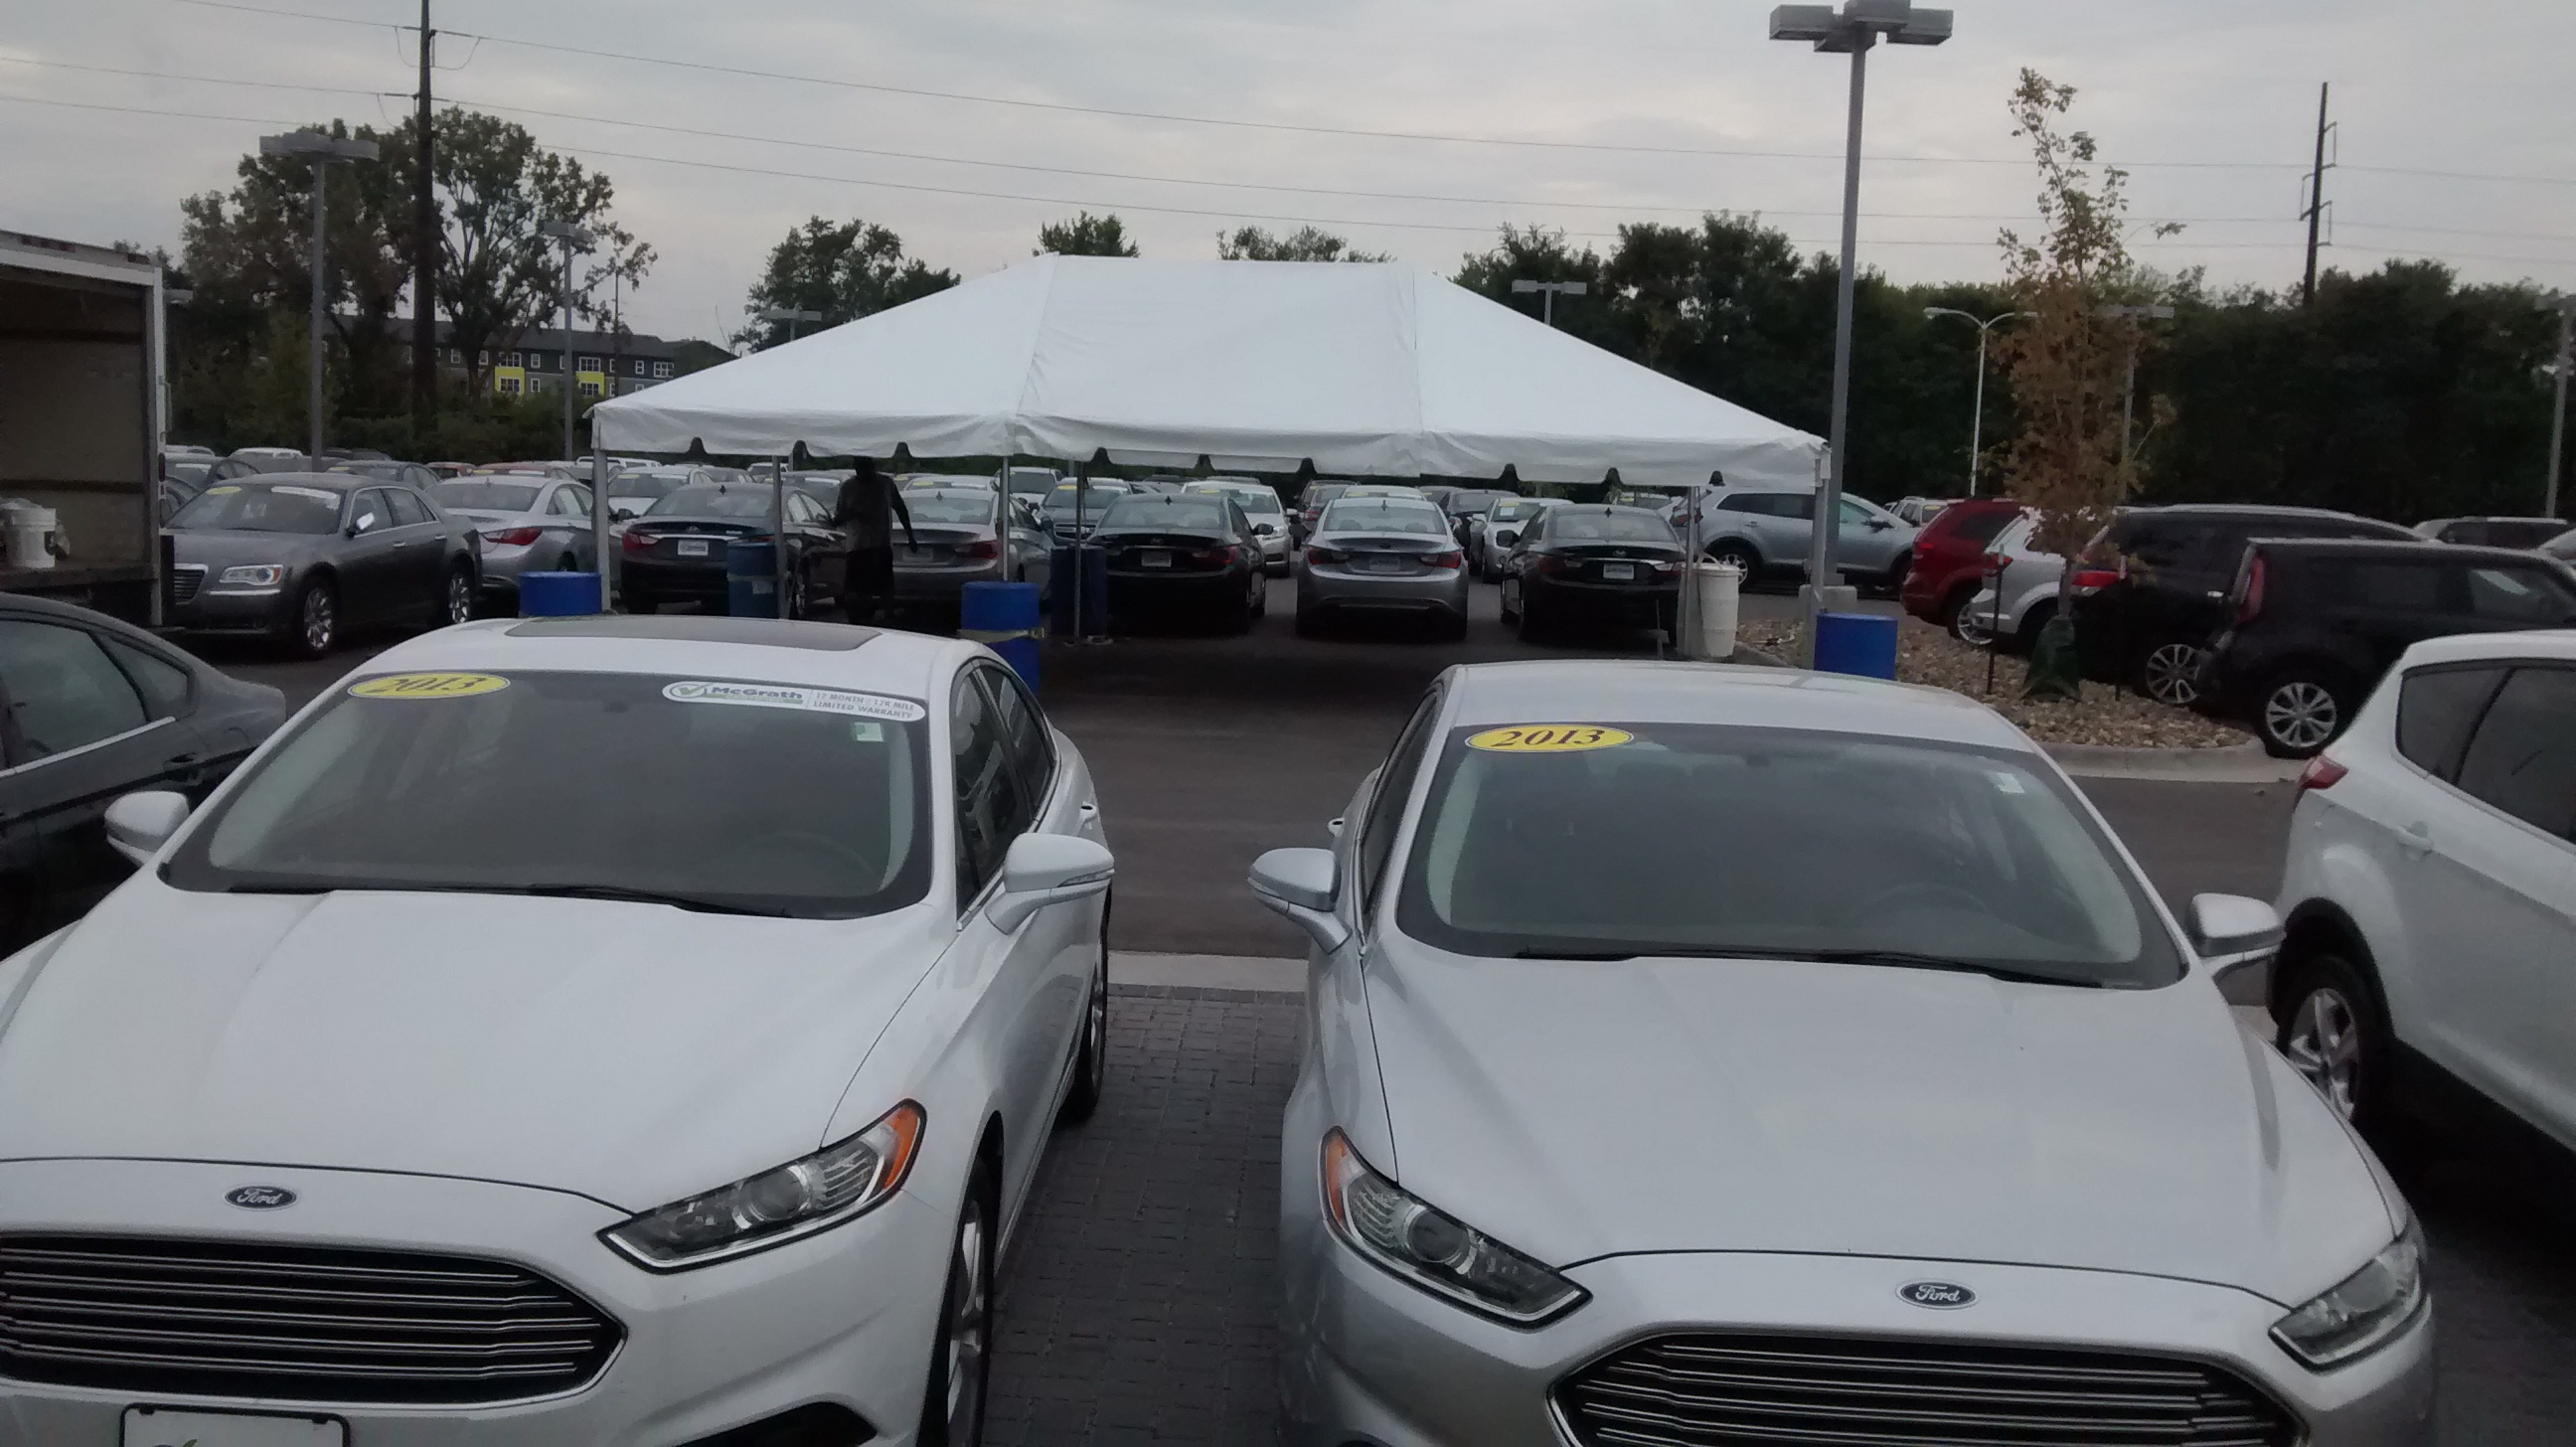 20′ x 30′ frame tent for the grand re-opening at Coralville Used Car Superstore view by cars